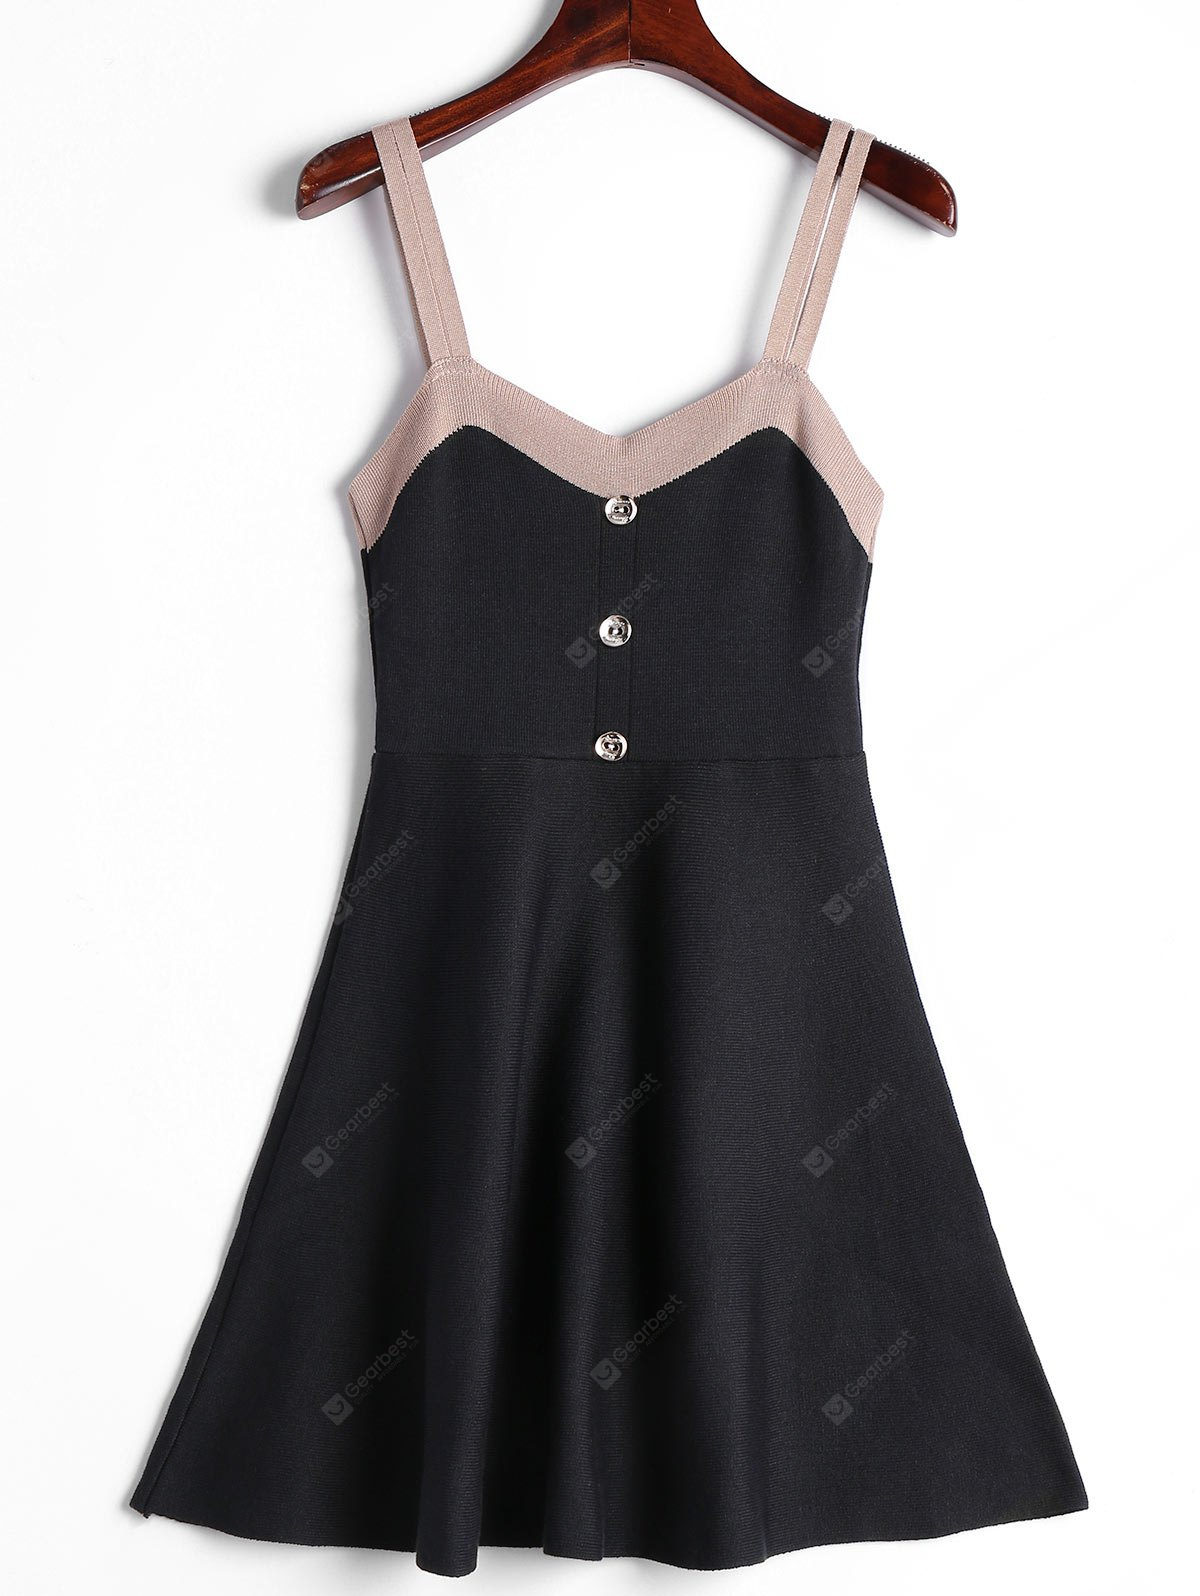 Double Straps Two Tone Knitted Dress